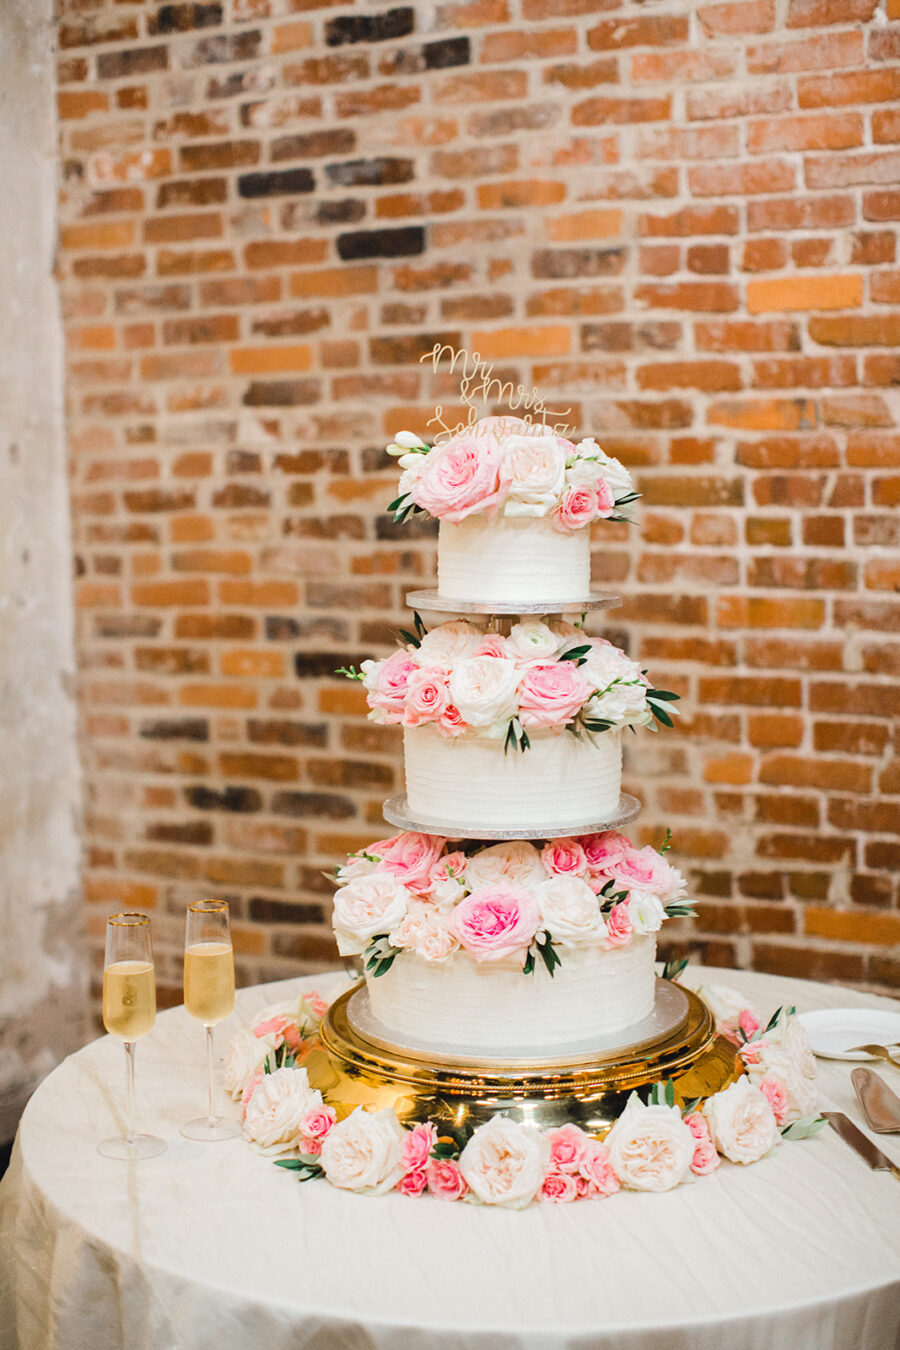 Pink and white floral wedding cake design